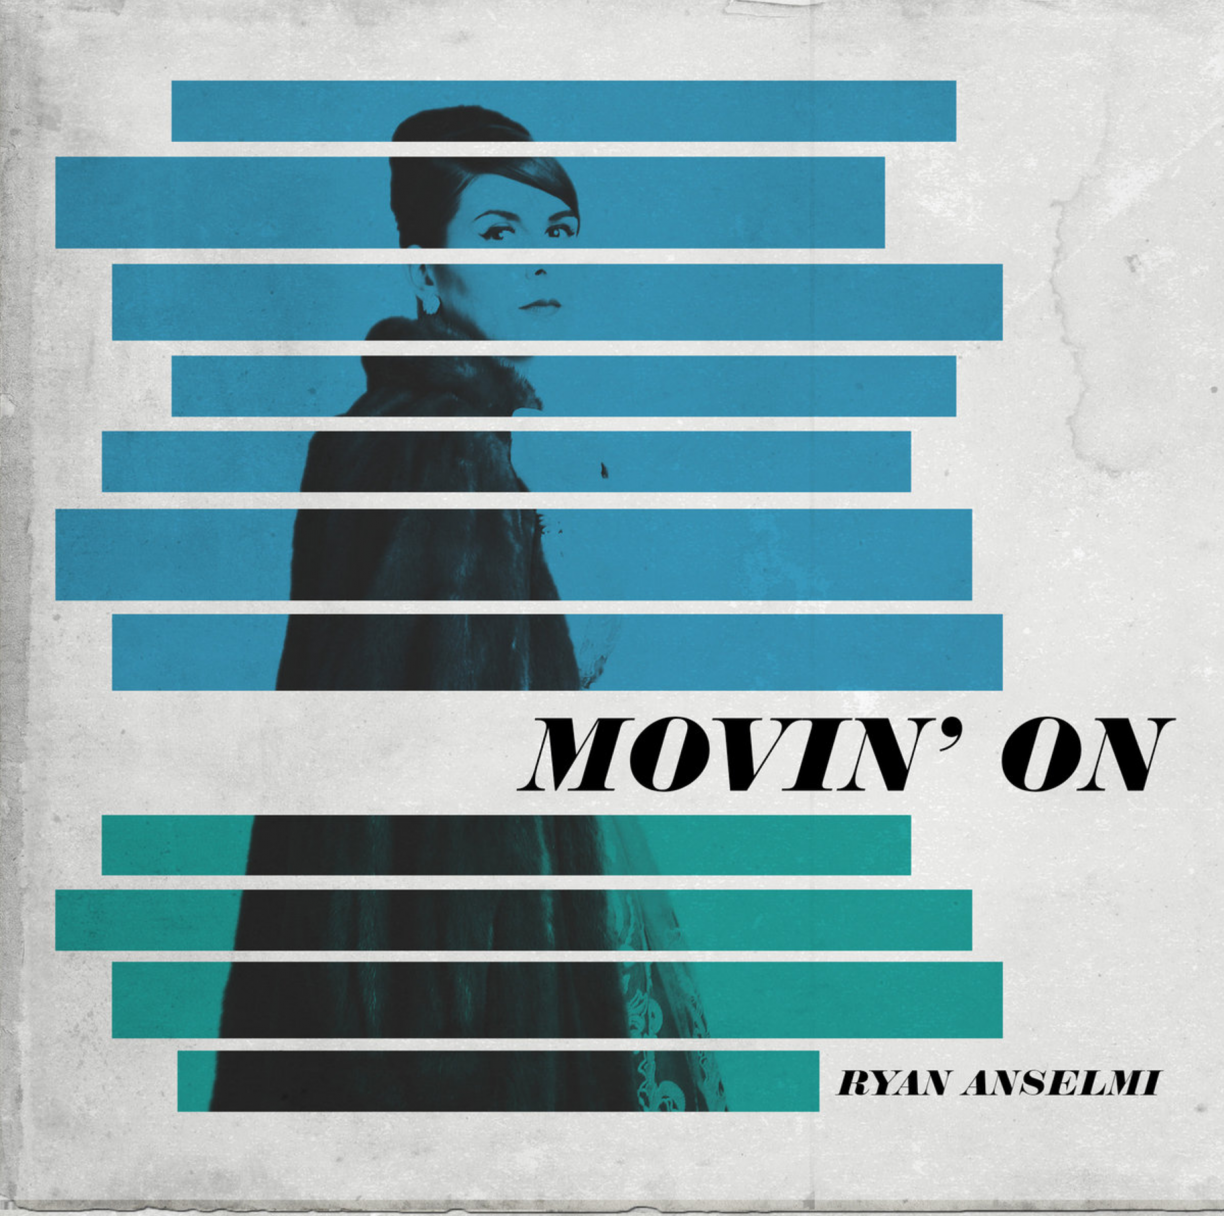 Ryan Anselmi - Movin' On